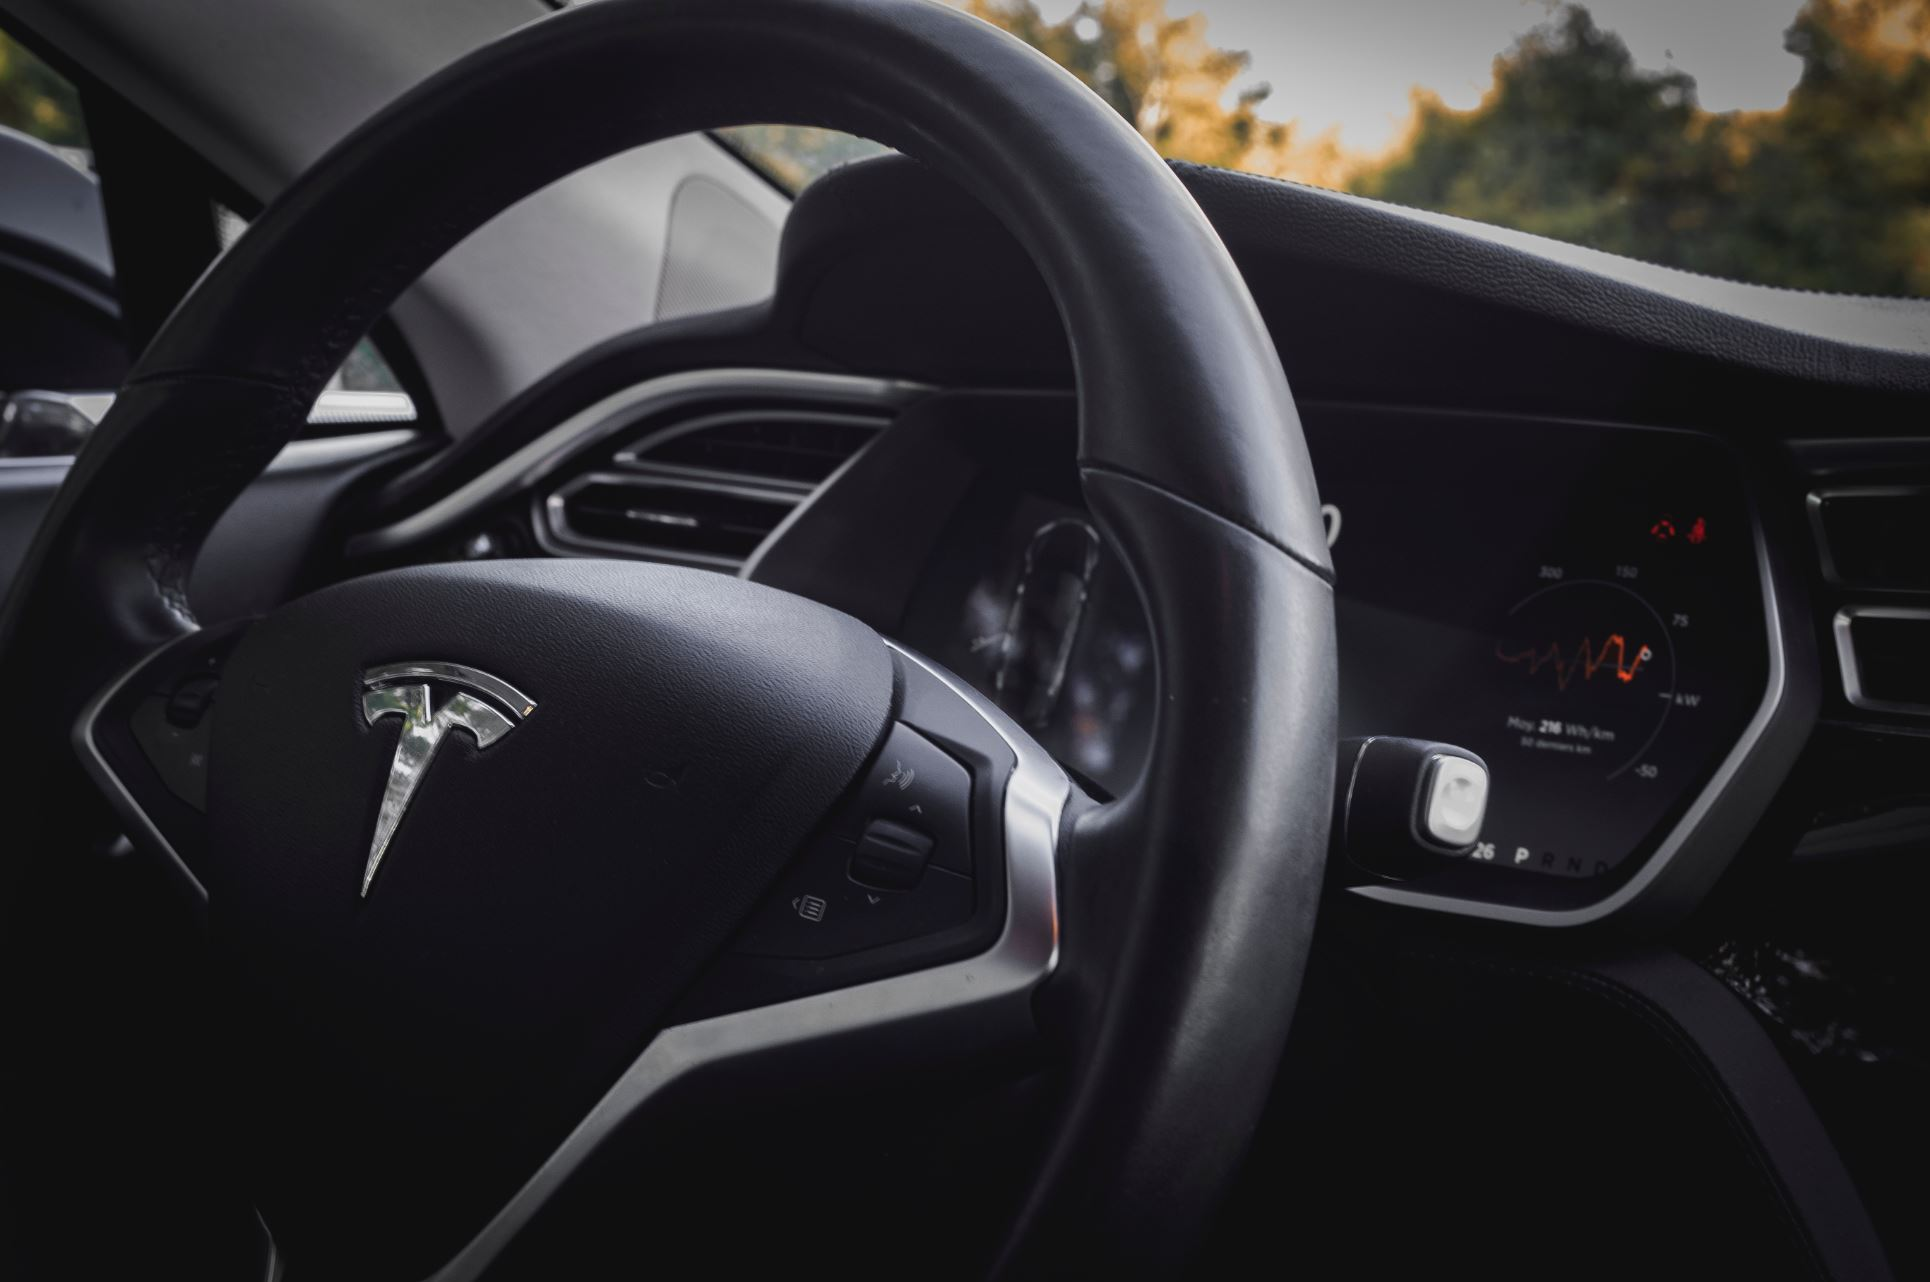 According to  CleanTechnica  a lot of Tesla's are being sold in China currently - Image Credit:  Jp Valery via Unsplash